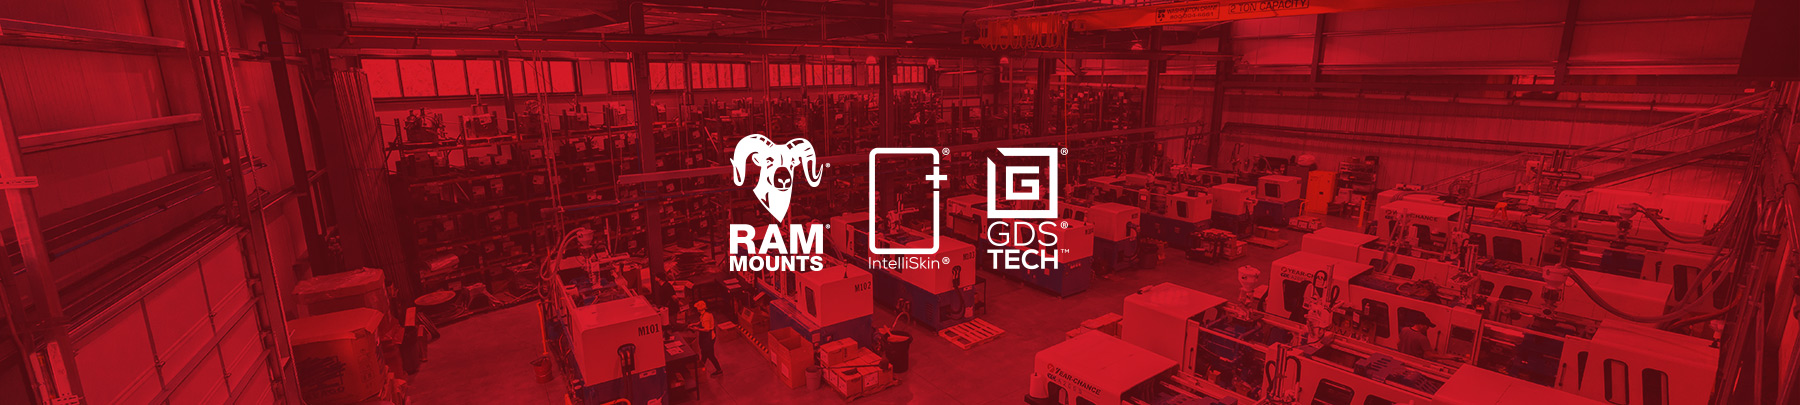 RAM® Mounts, Intelliskin®, GDS® Technology